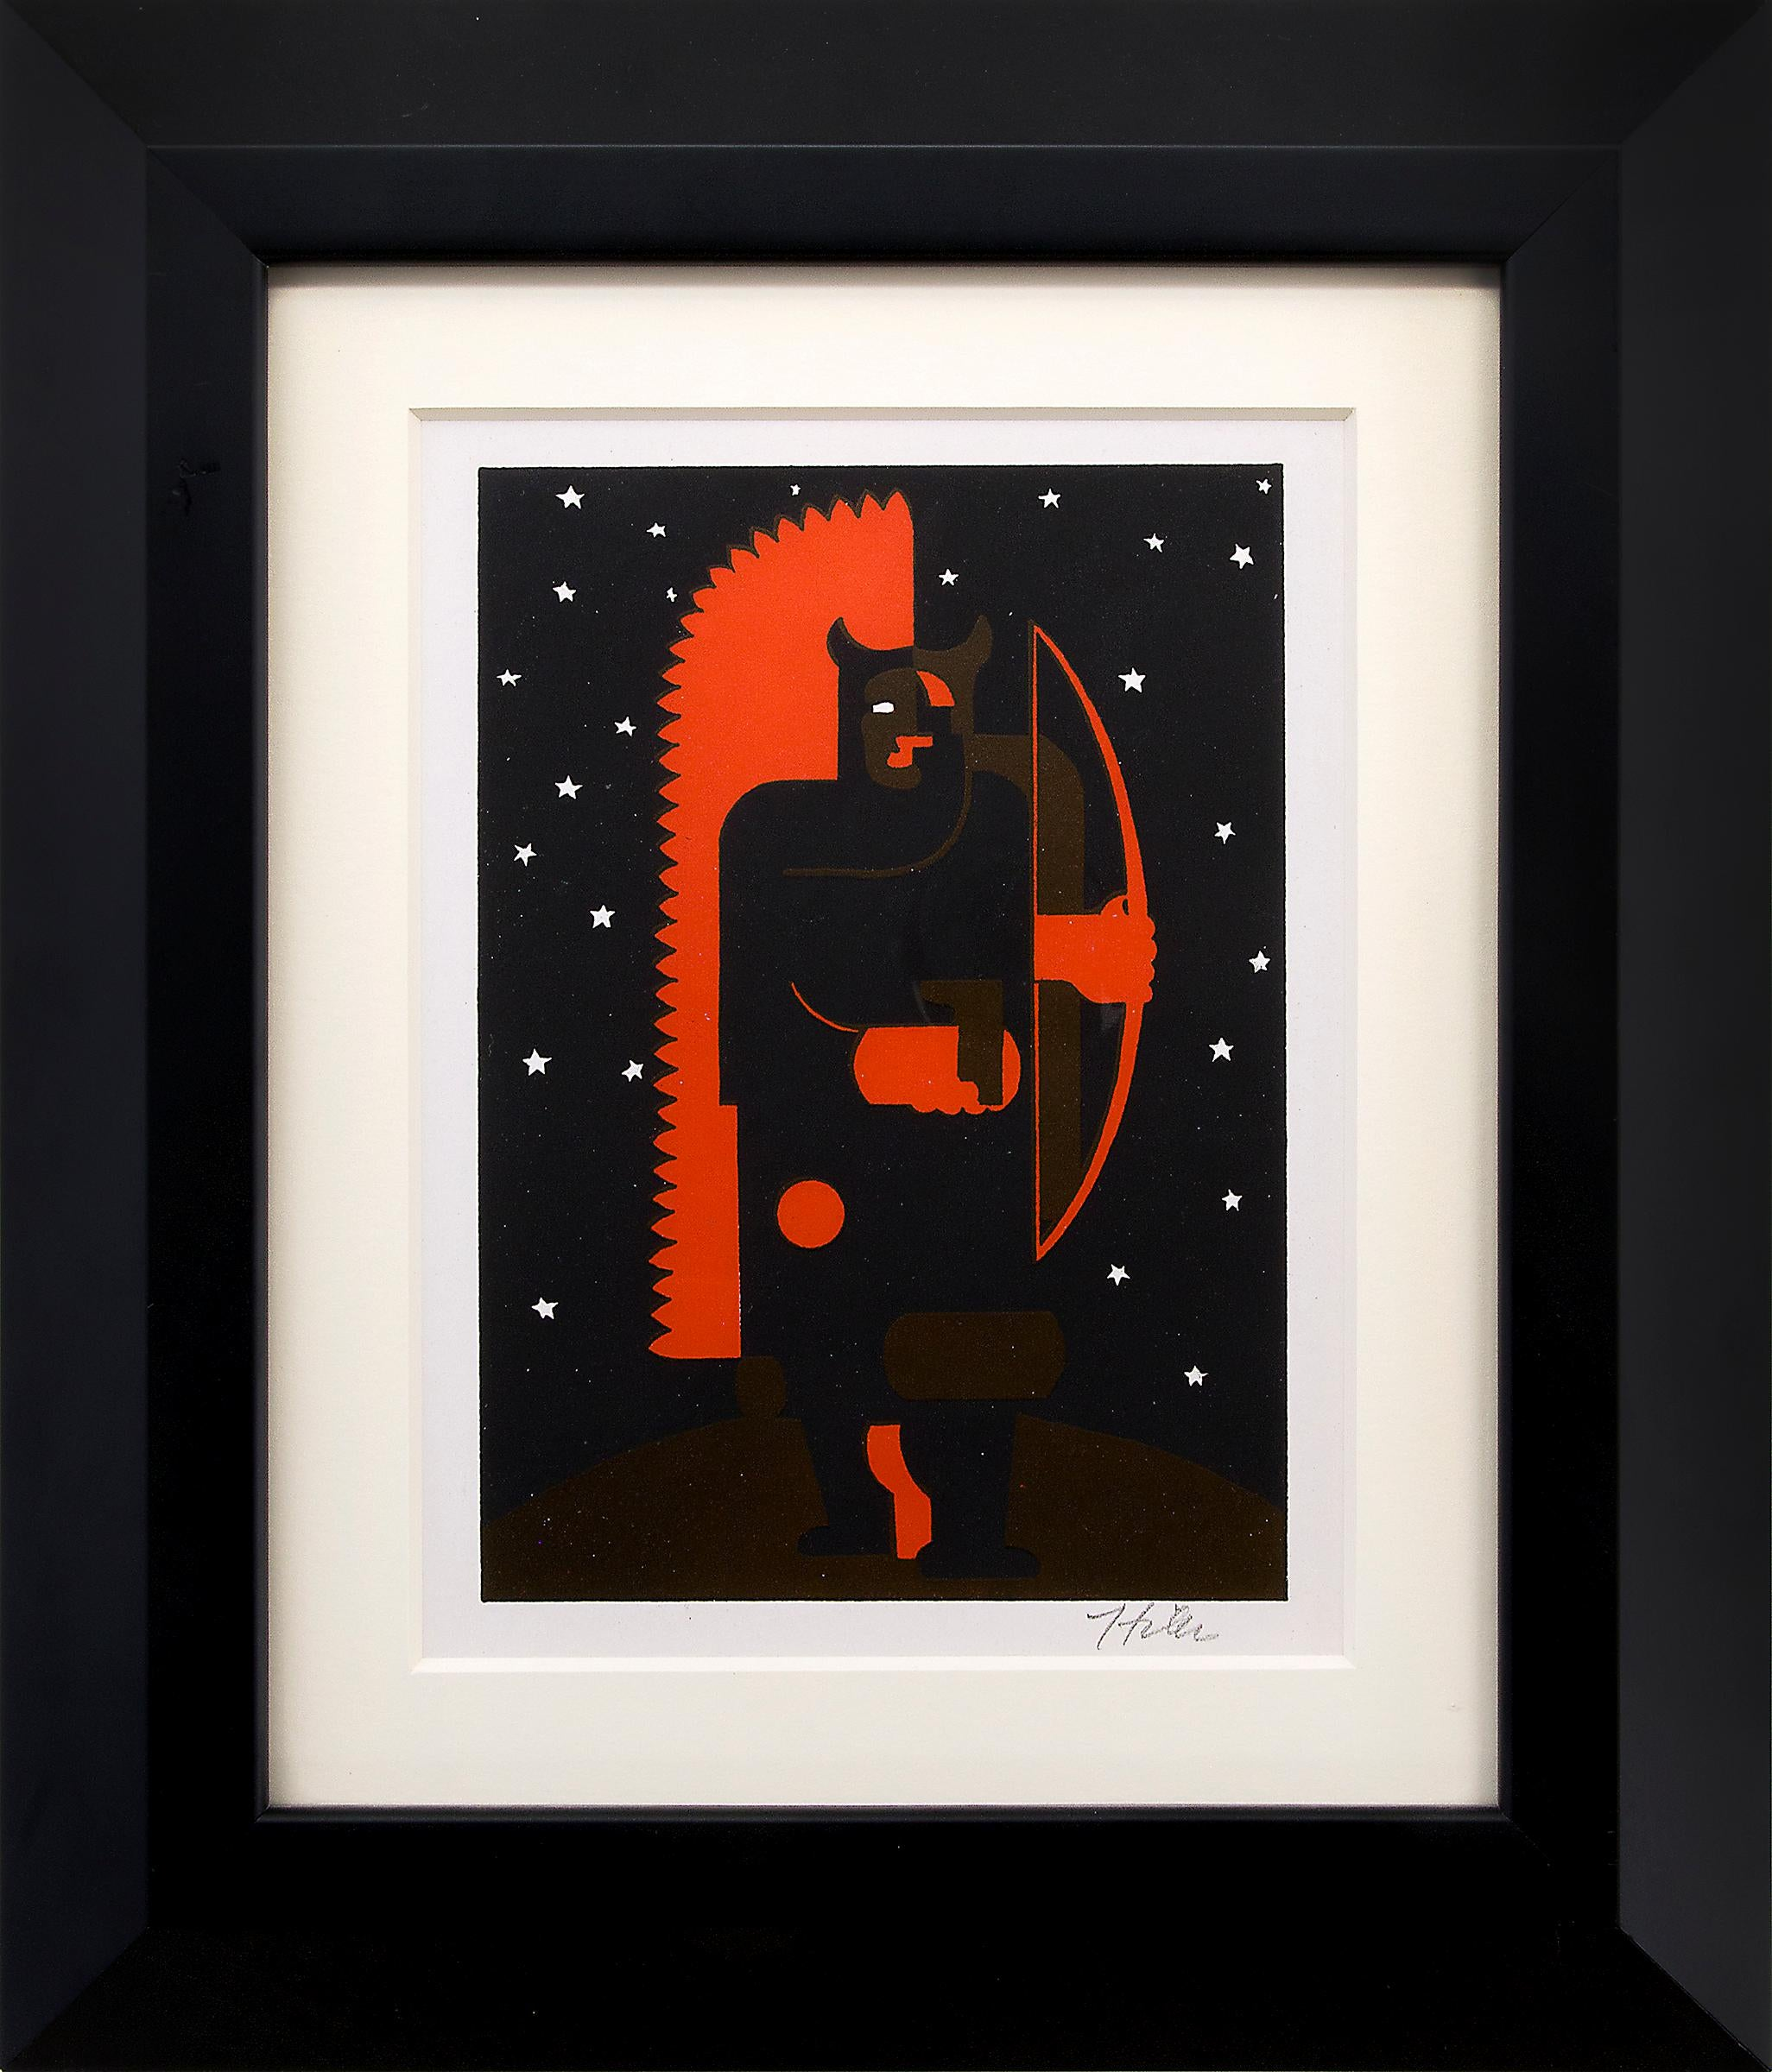 Indian with Bow in Fox Costume (1930s Modernist Print in Red, Black & White)